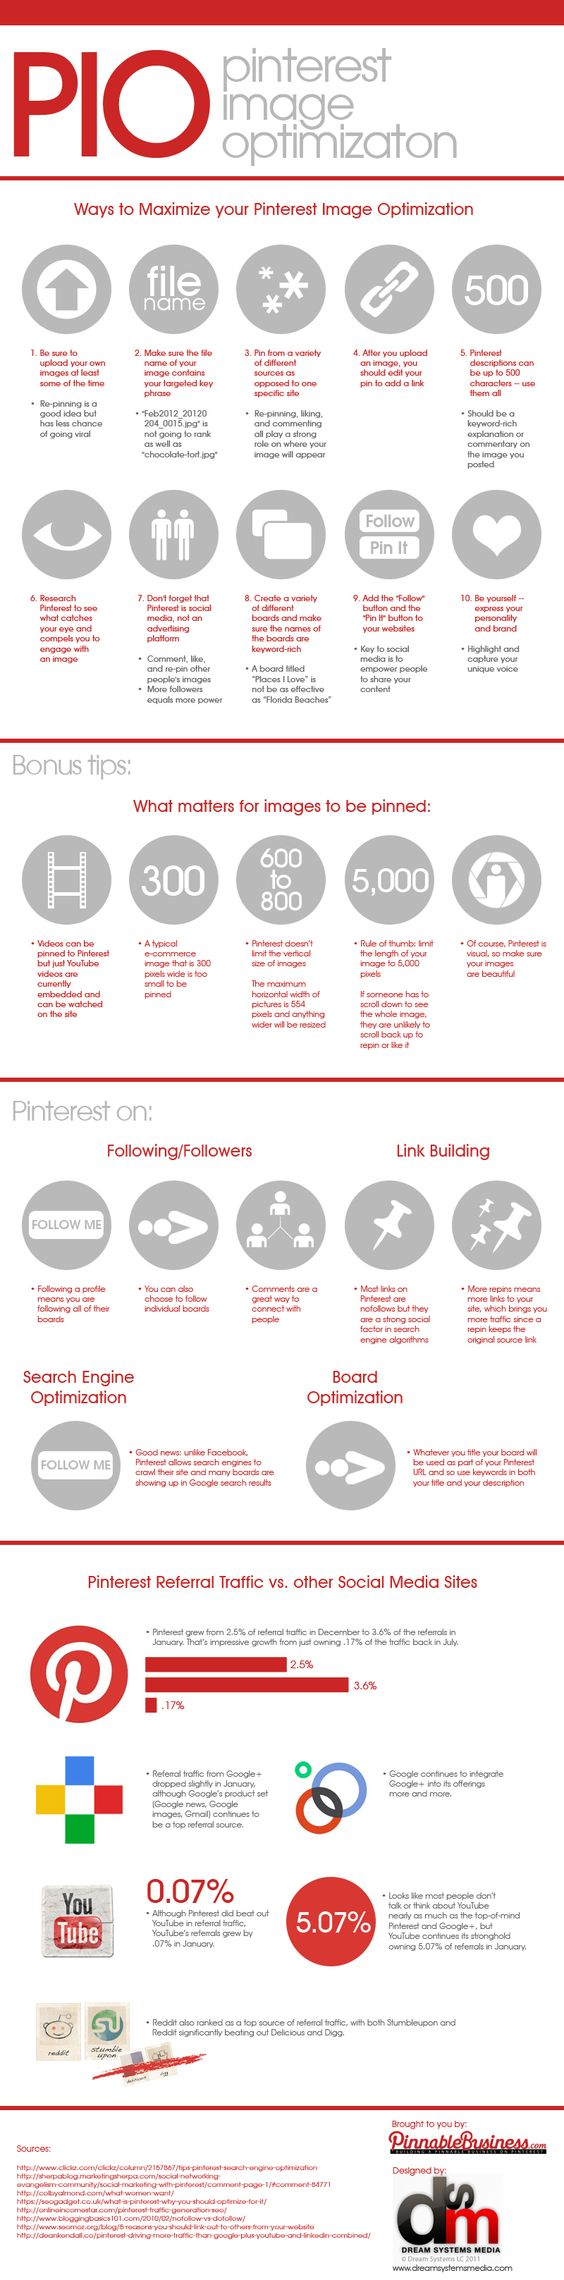 #Pinterest Optimization